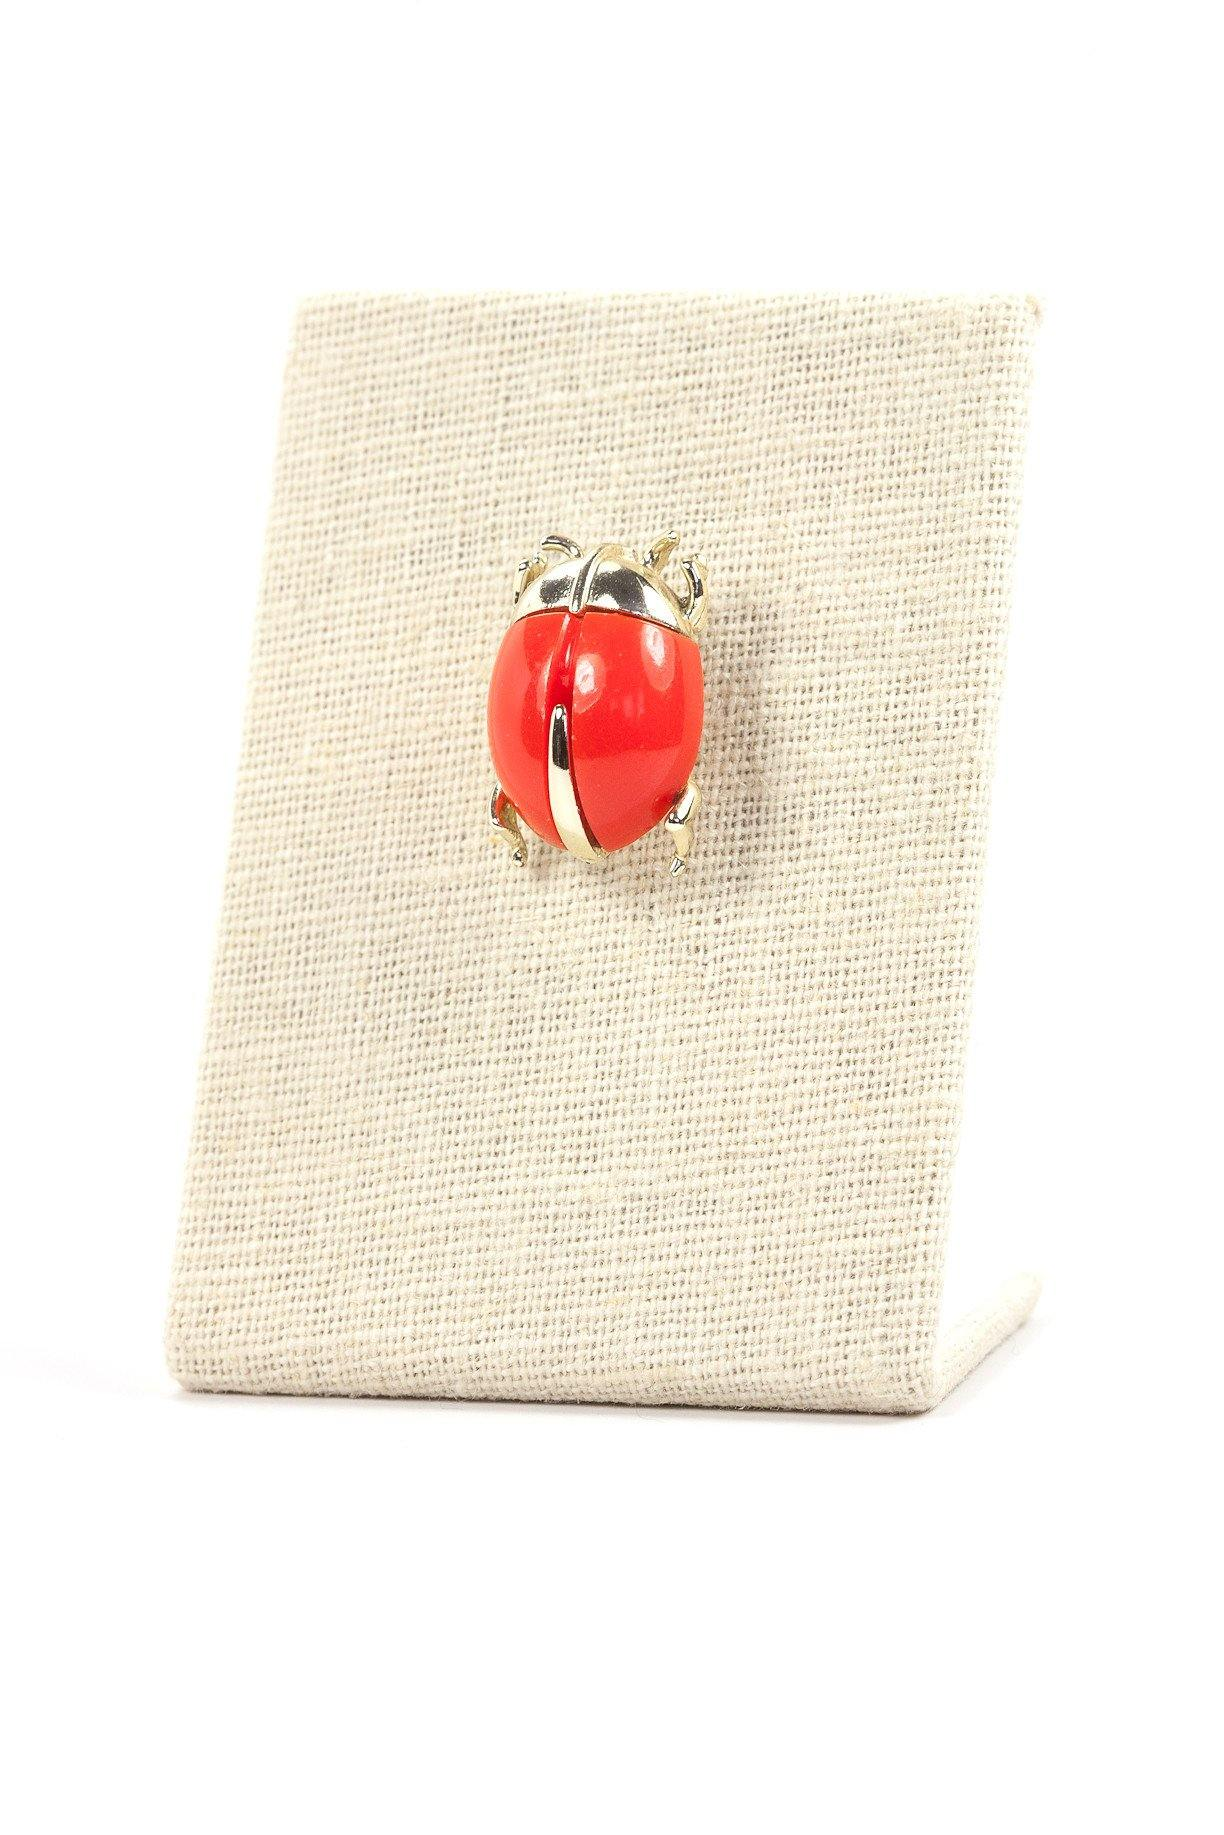 60's__Sarah Coventry__Beetle Brooch